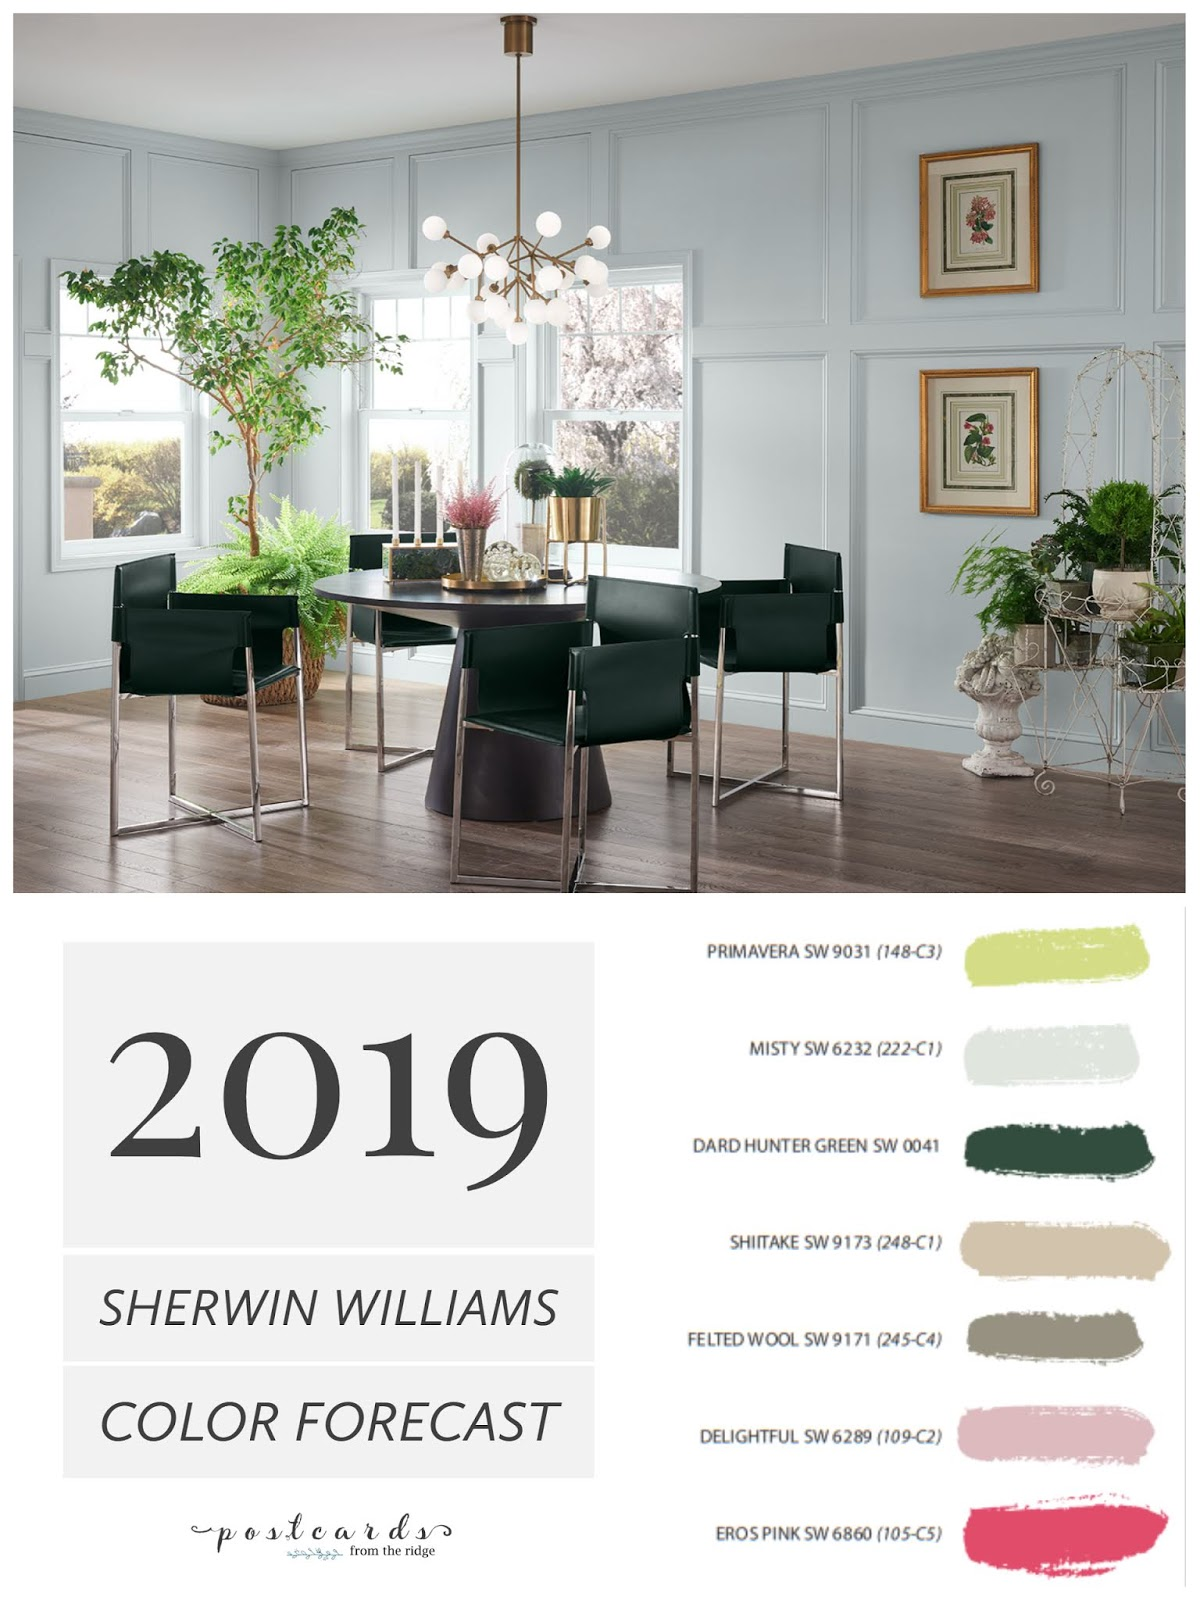 2019 paint color forecast from sherwin williams on paint colors by sherwin williams id=88610